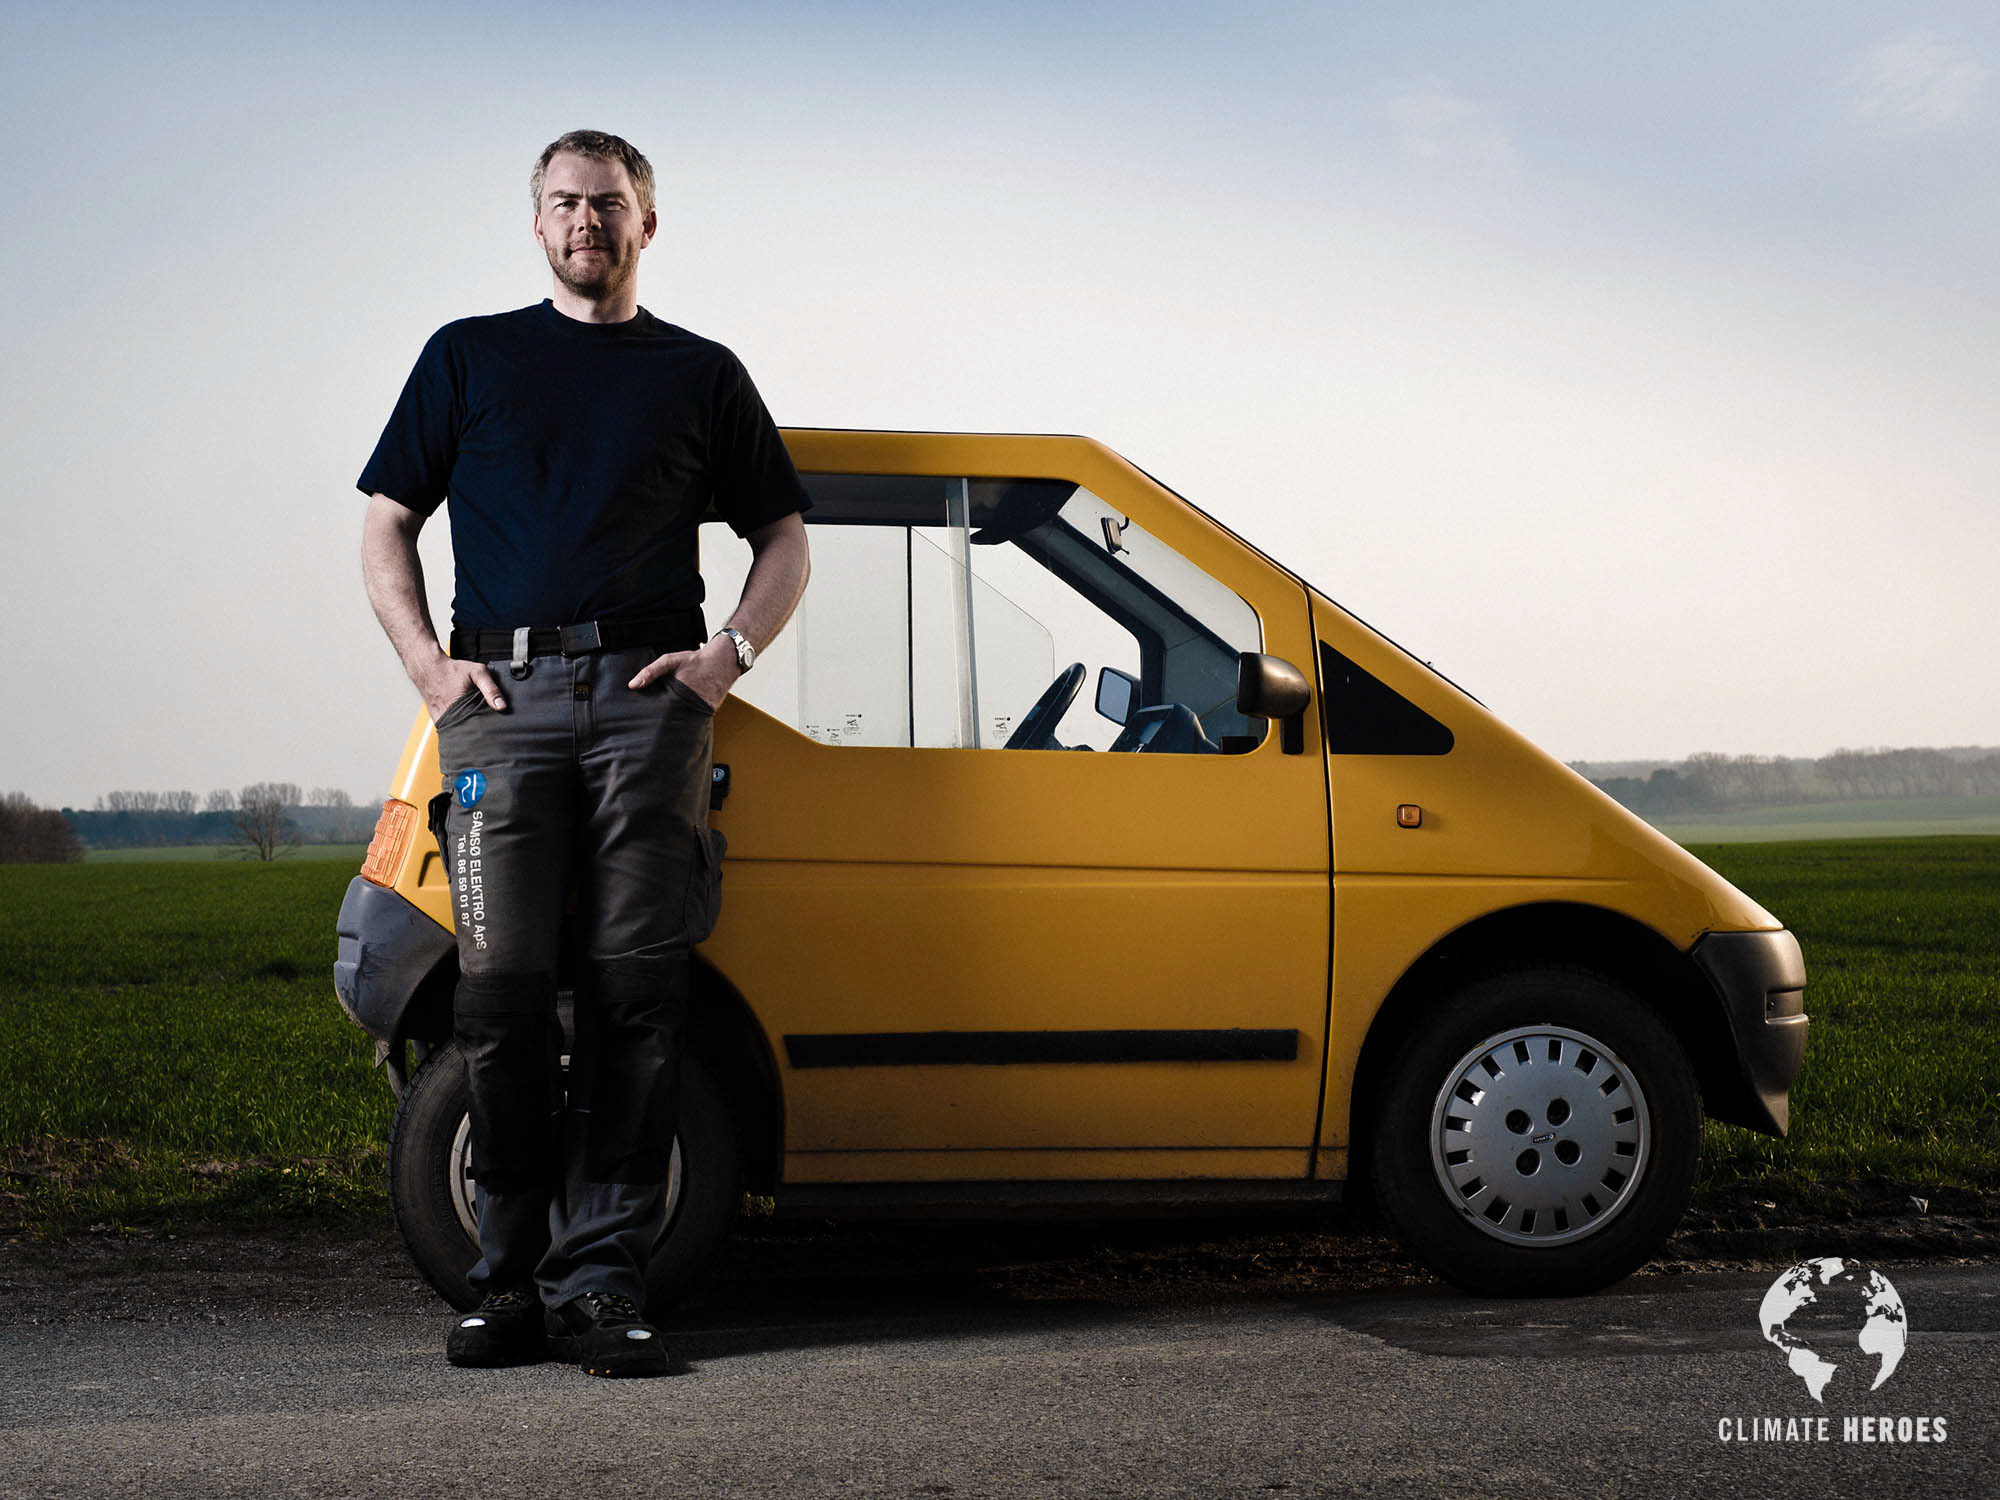 Climate Heroes project, Samso. Brian Kjaer, electrician